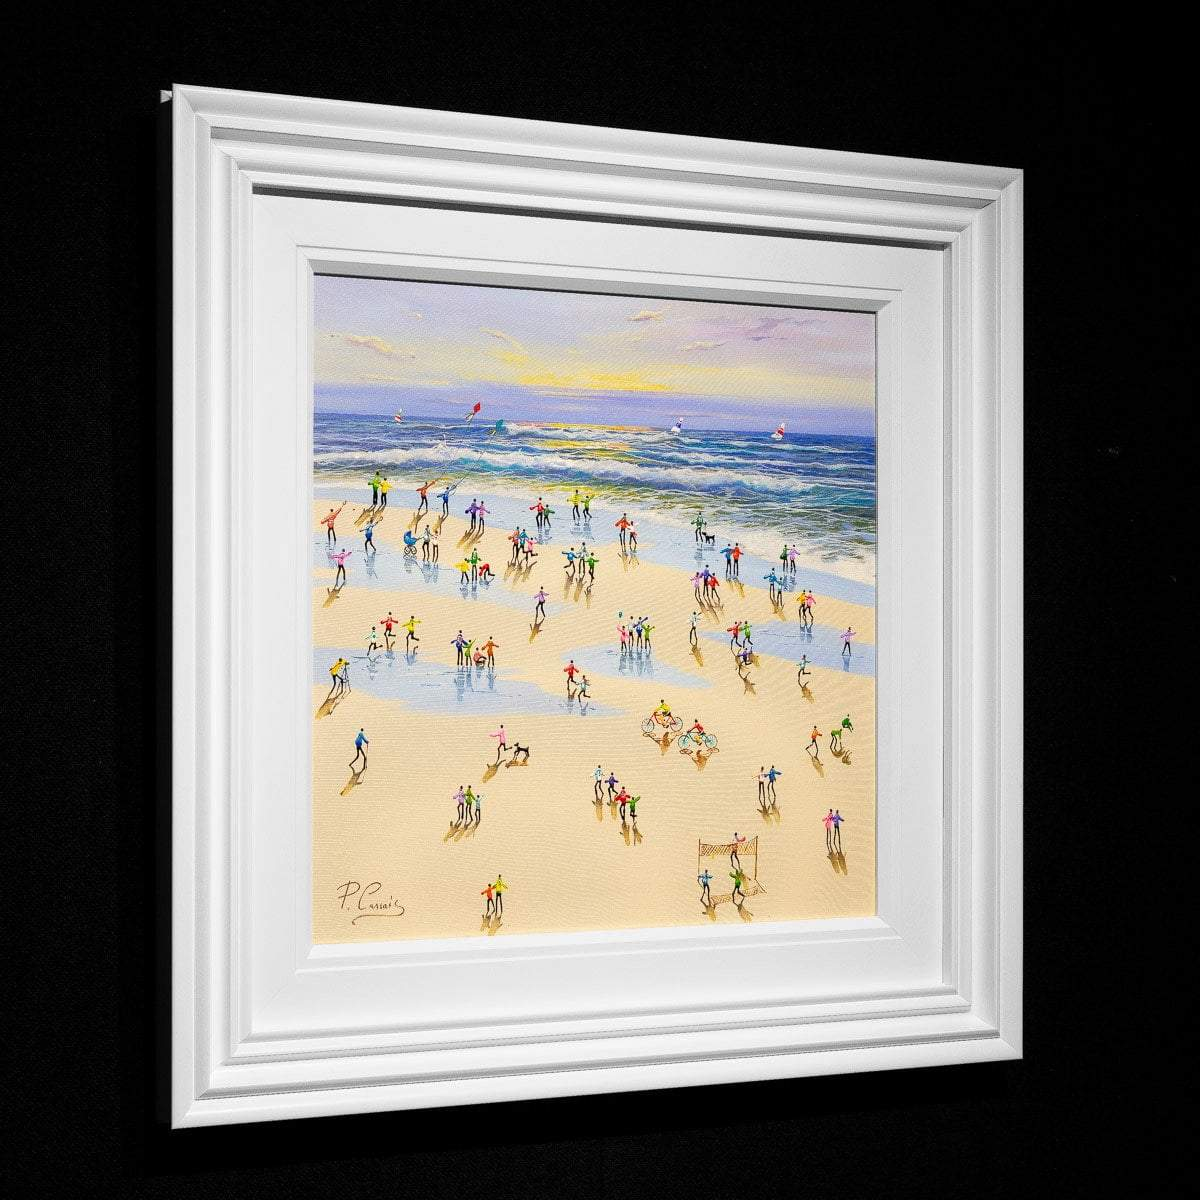 Rolling Waves - Original Paola Cassais Framed